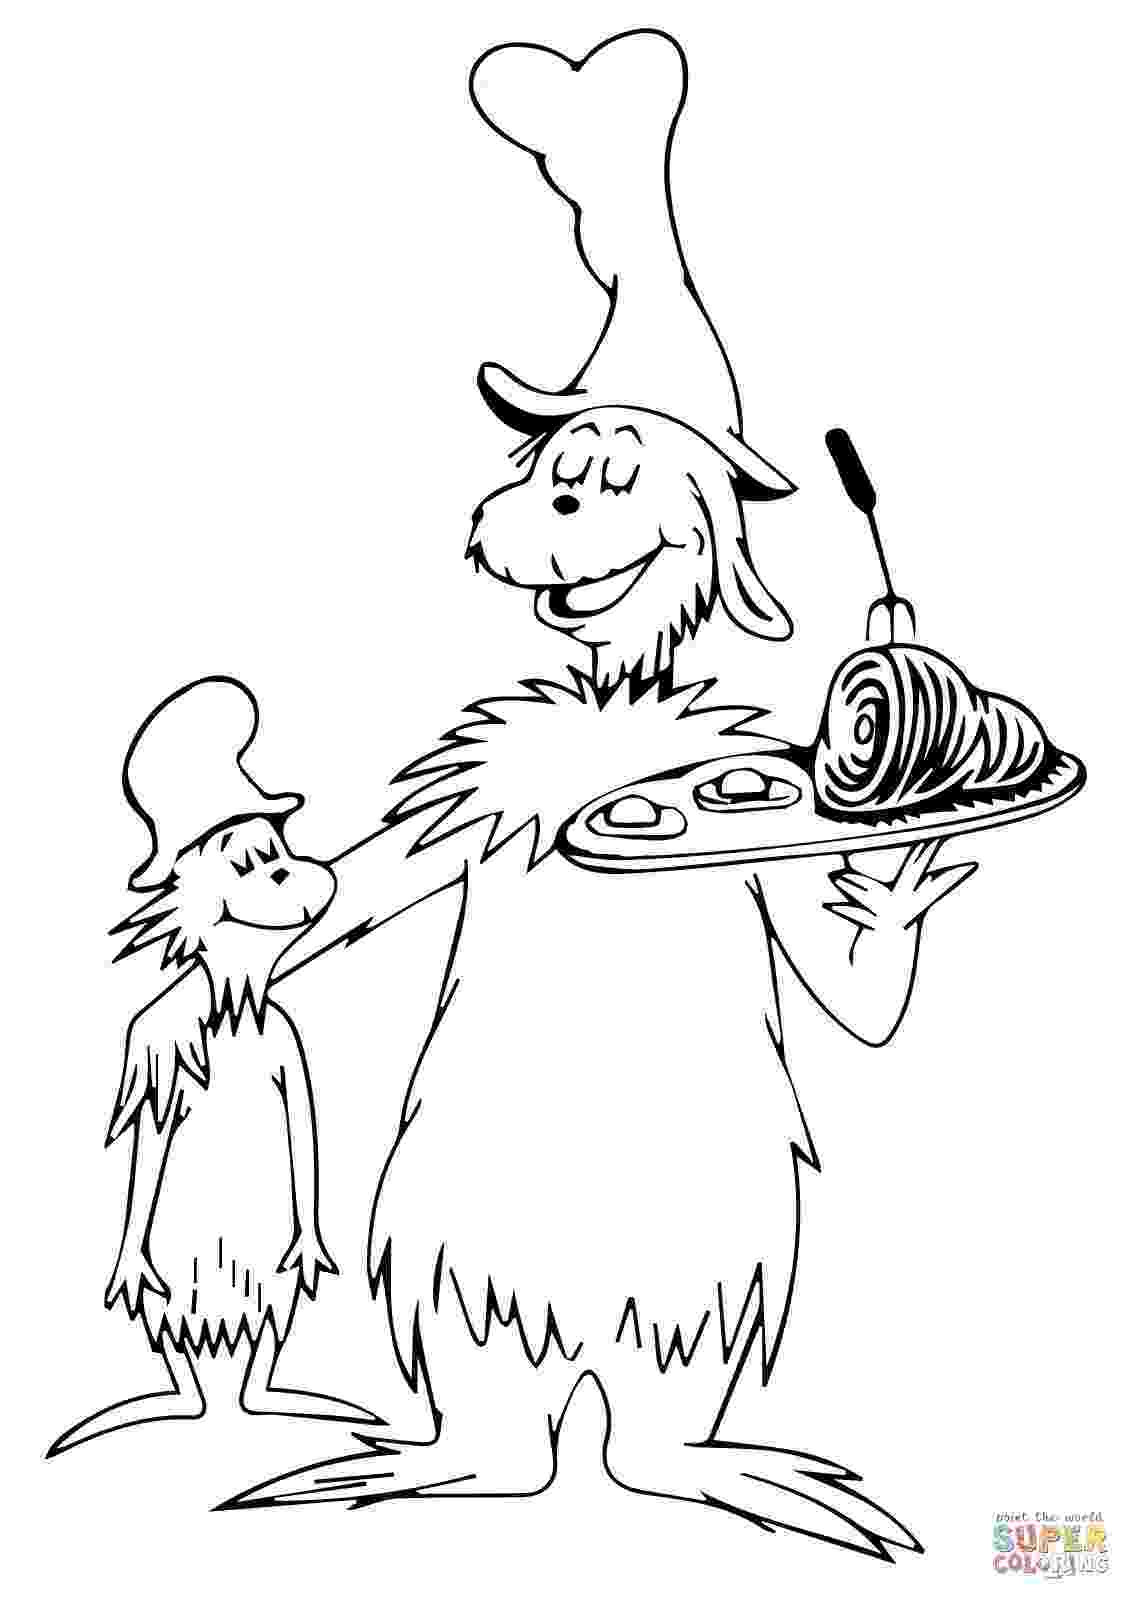 green eggs and ham coloring sheet i like green eggs and ham coloring page free printable sheet green ham coloring and eggs